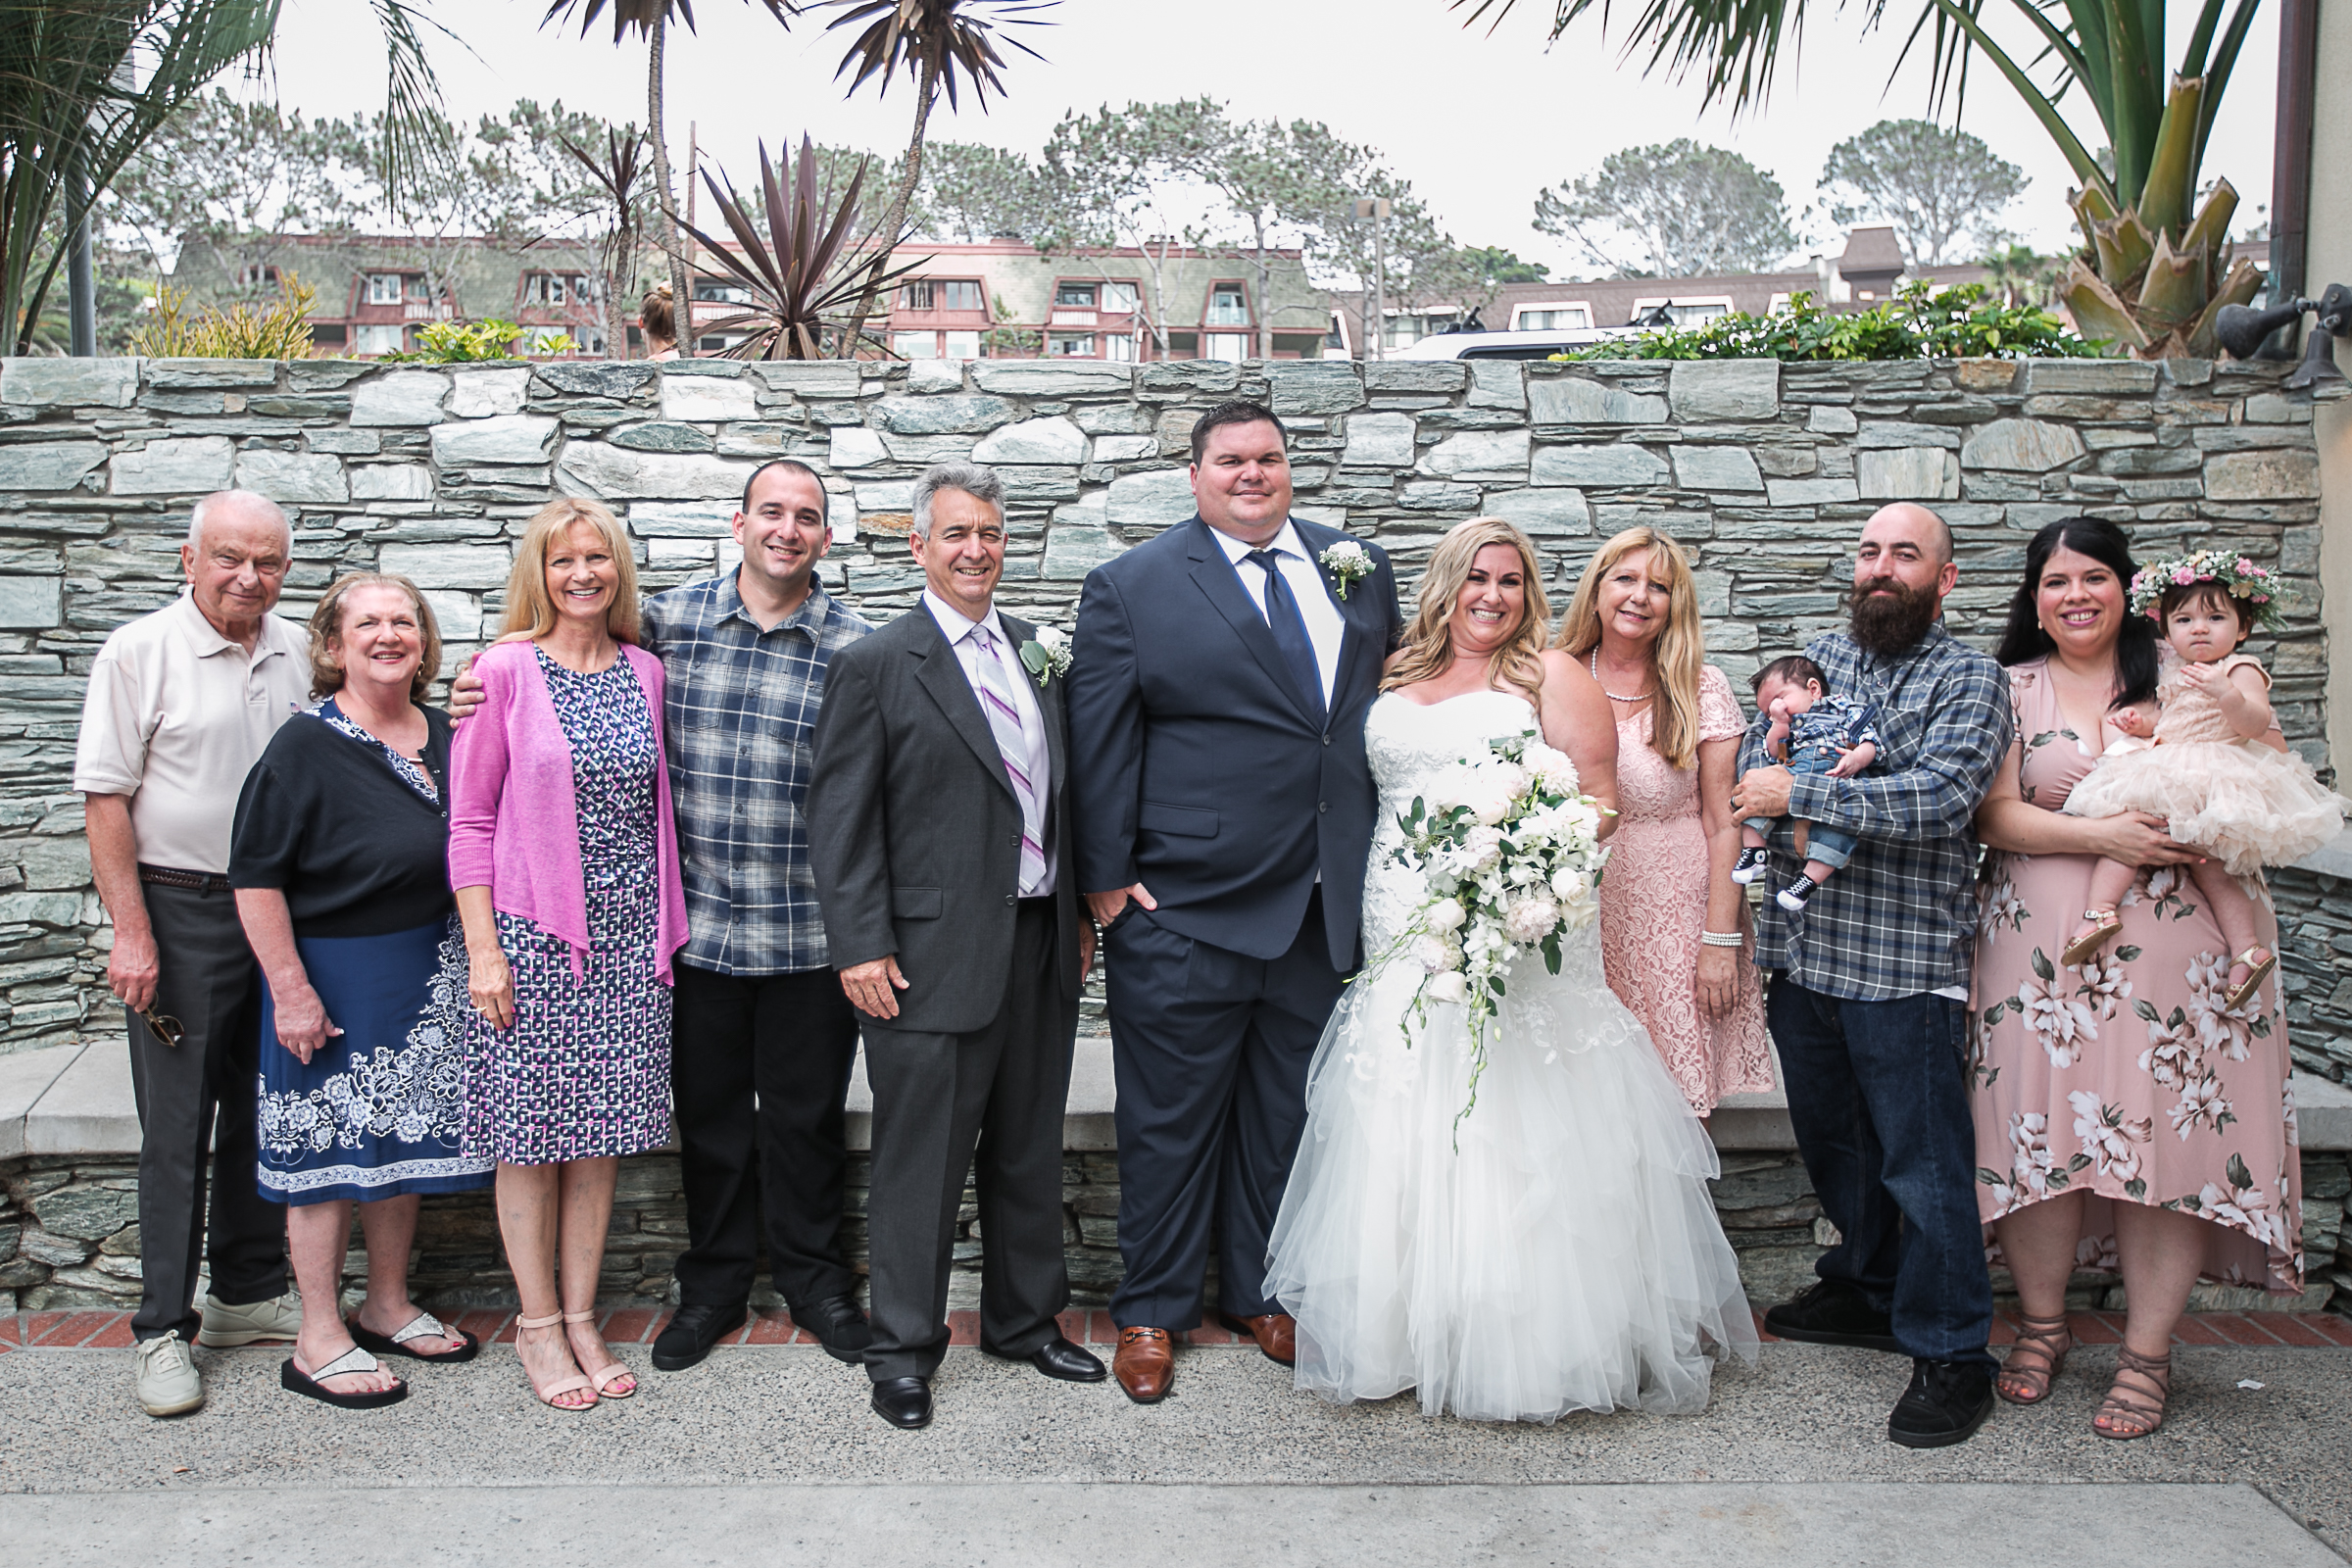 Jen_&_Mike_Del_Mar_Powerhouse_Wedding_2017 (15 of 45).jpg